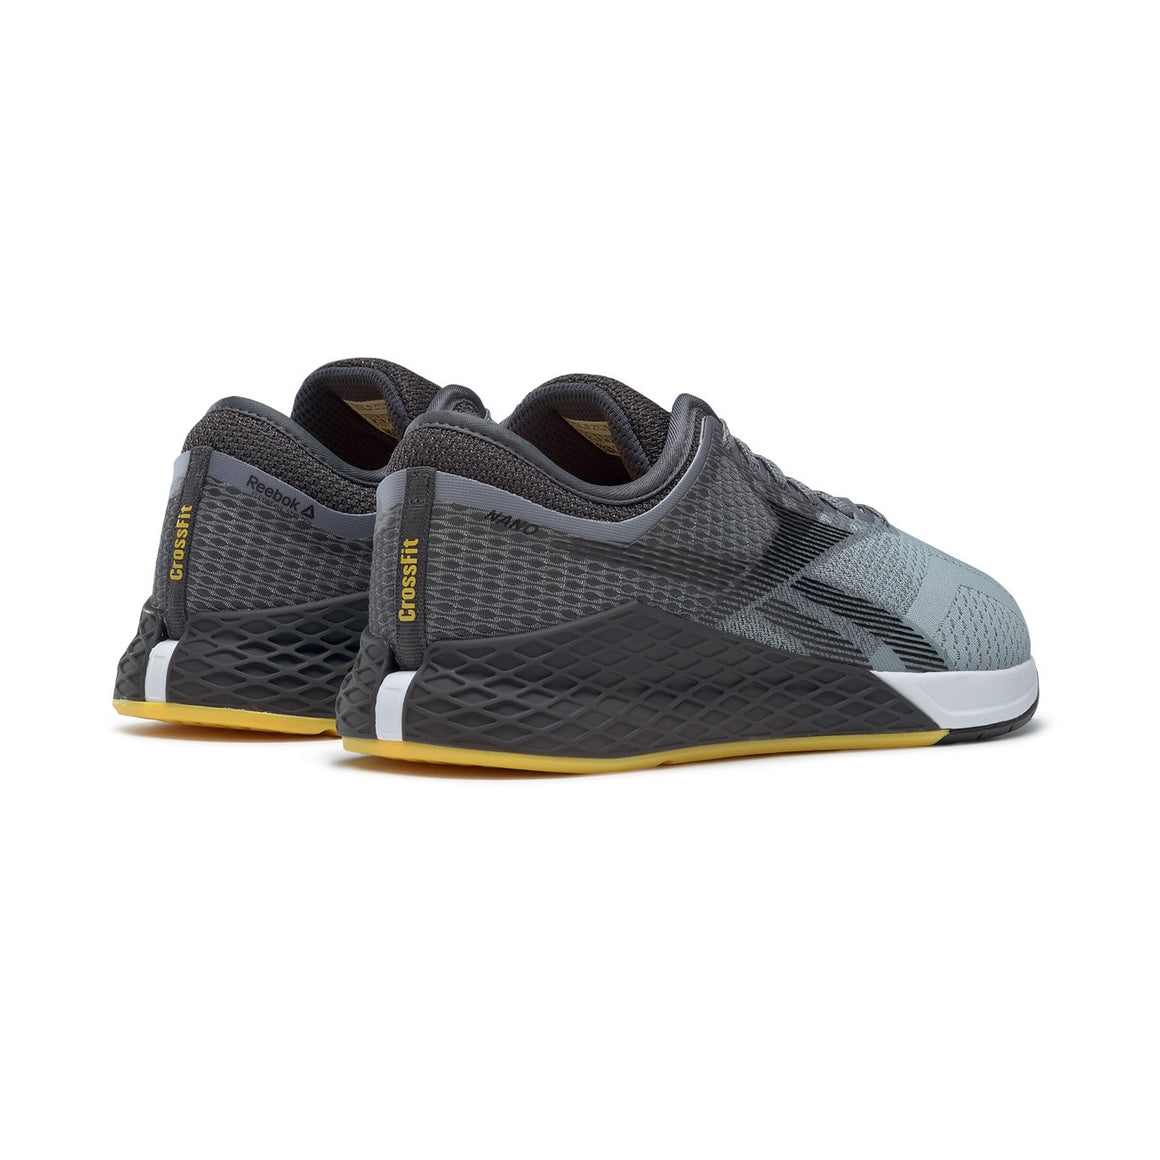 Men's Reebok CrossFit Nano 9 Beast, men, reebok, crossfit, nano, 9, beast, gym, workout, training, shoe, new, color, style, grey, yellow, special, limited, edition